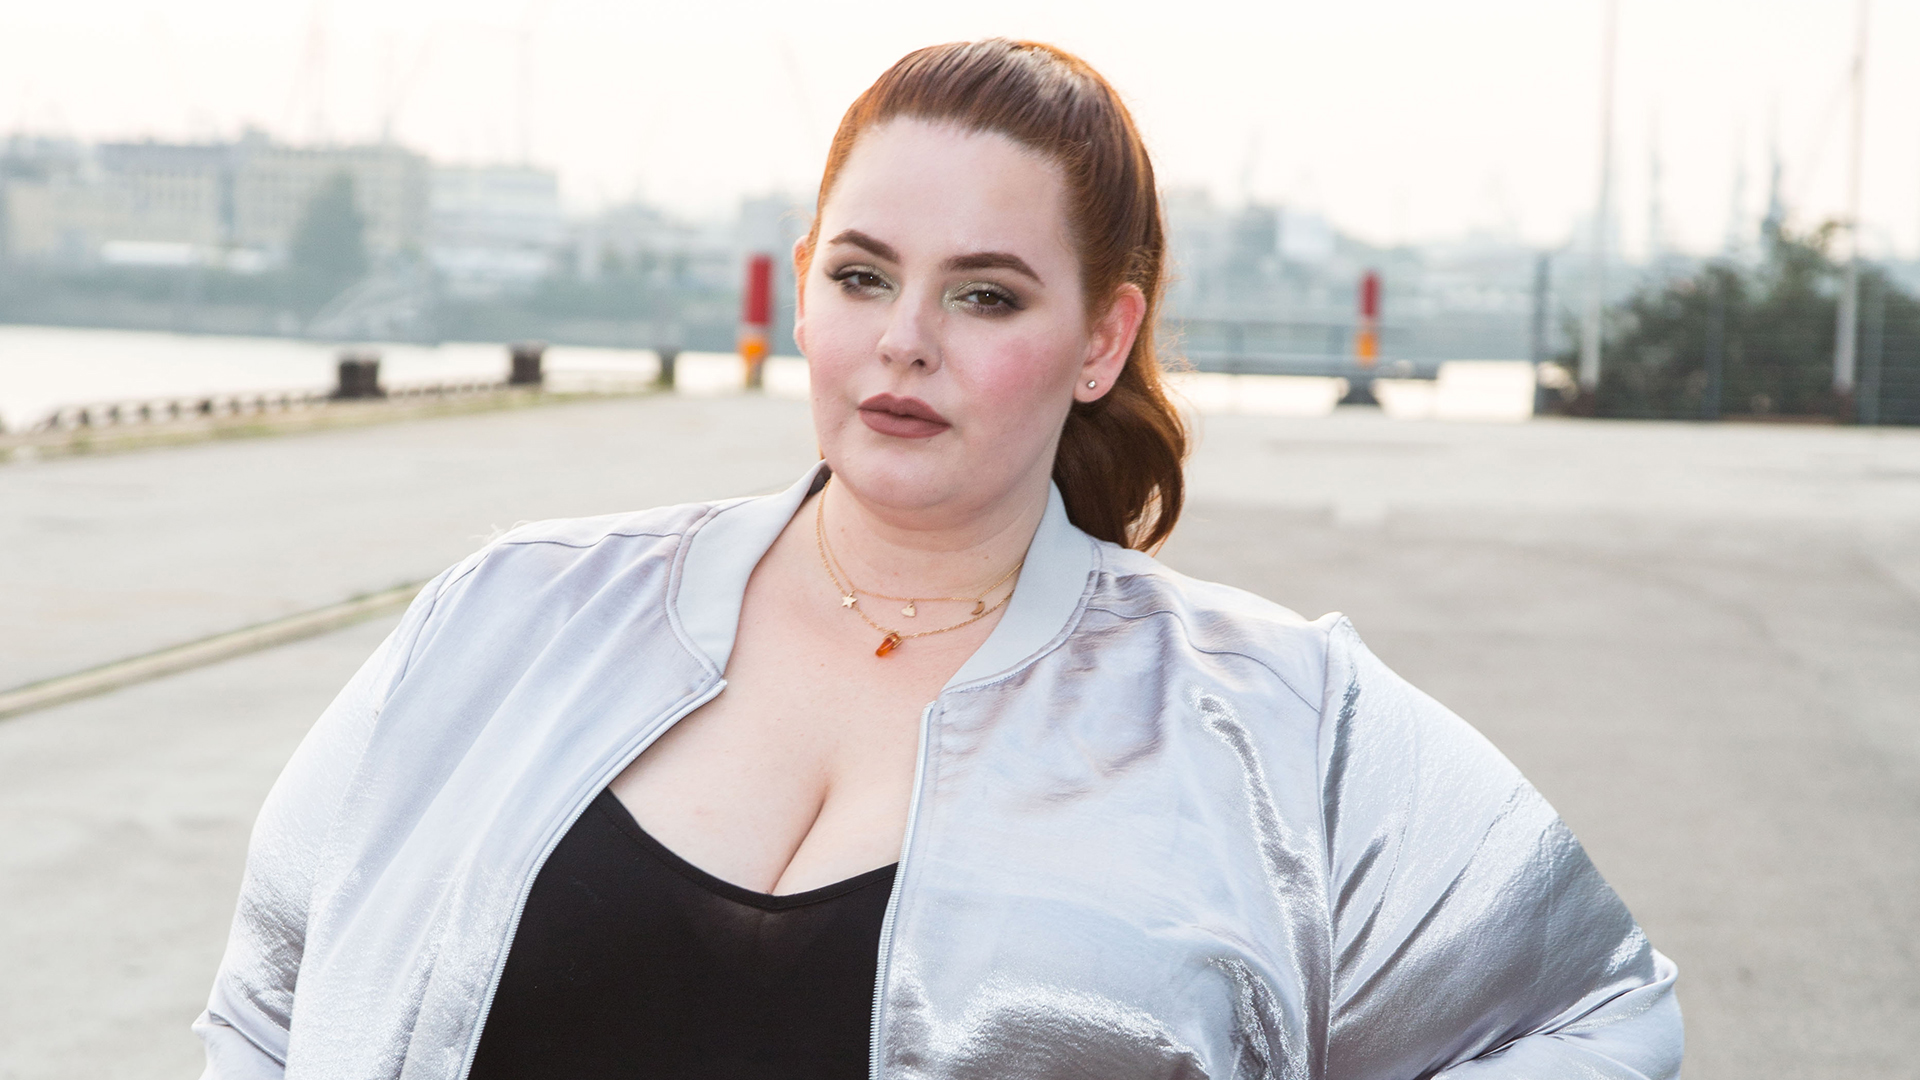 ICloud Tess Holliday nudes (66 photos), Pussy, Hot, Twitter, cameltoe 2006